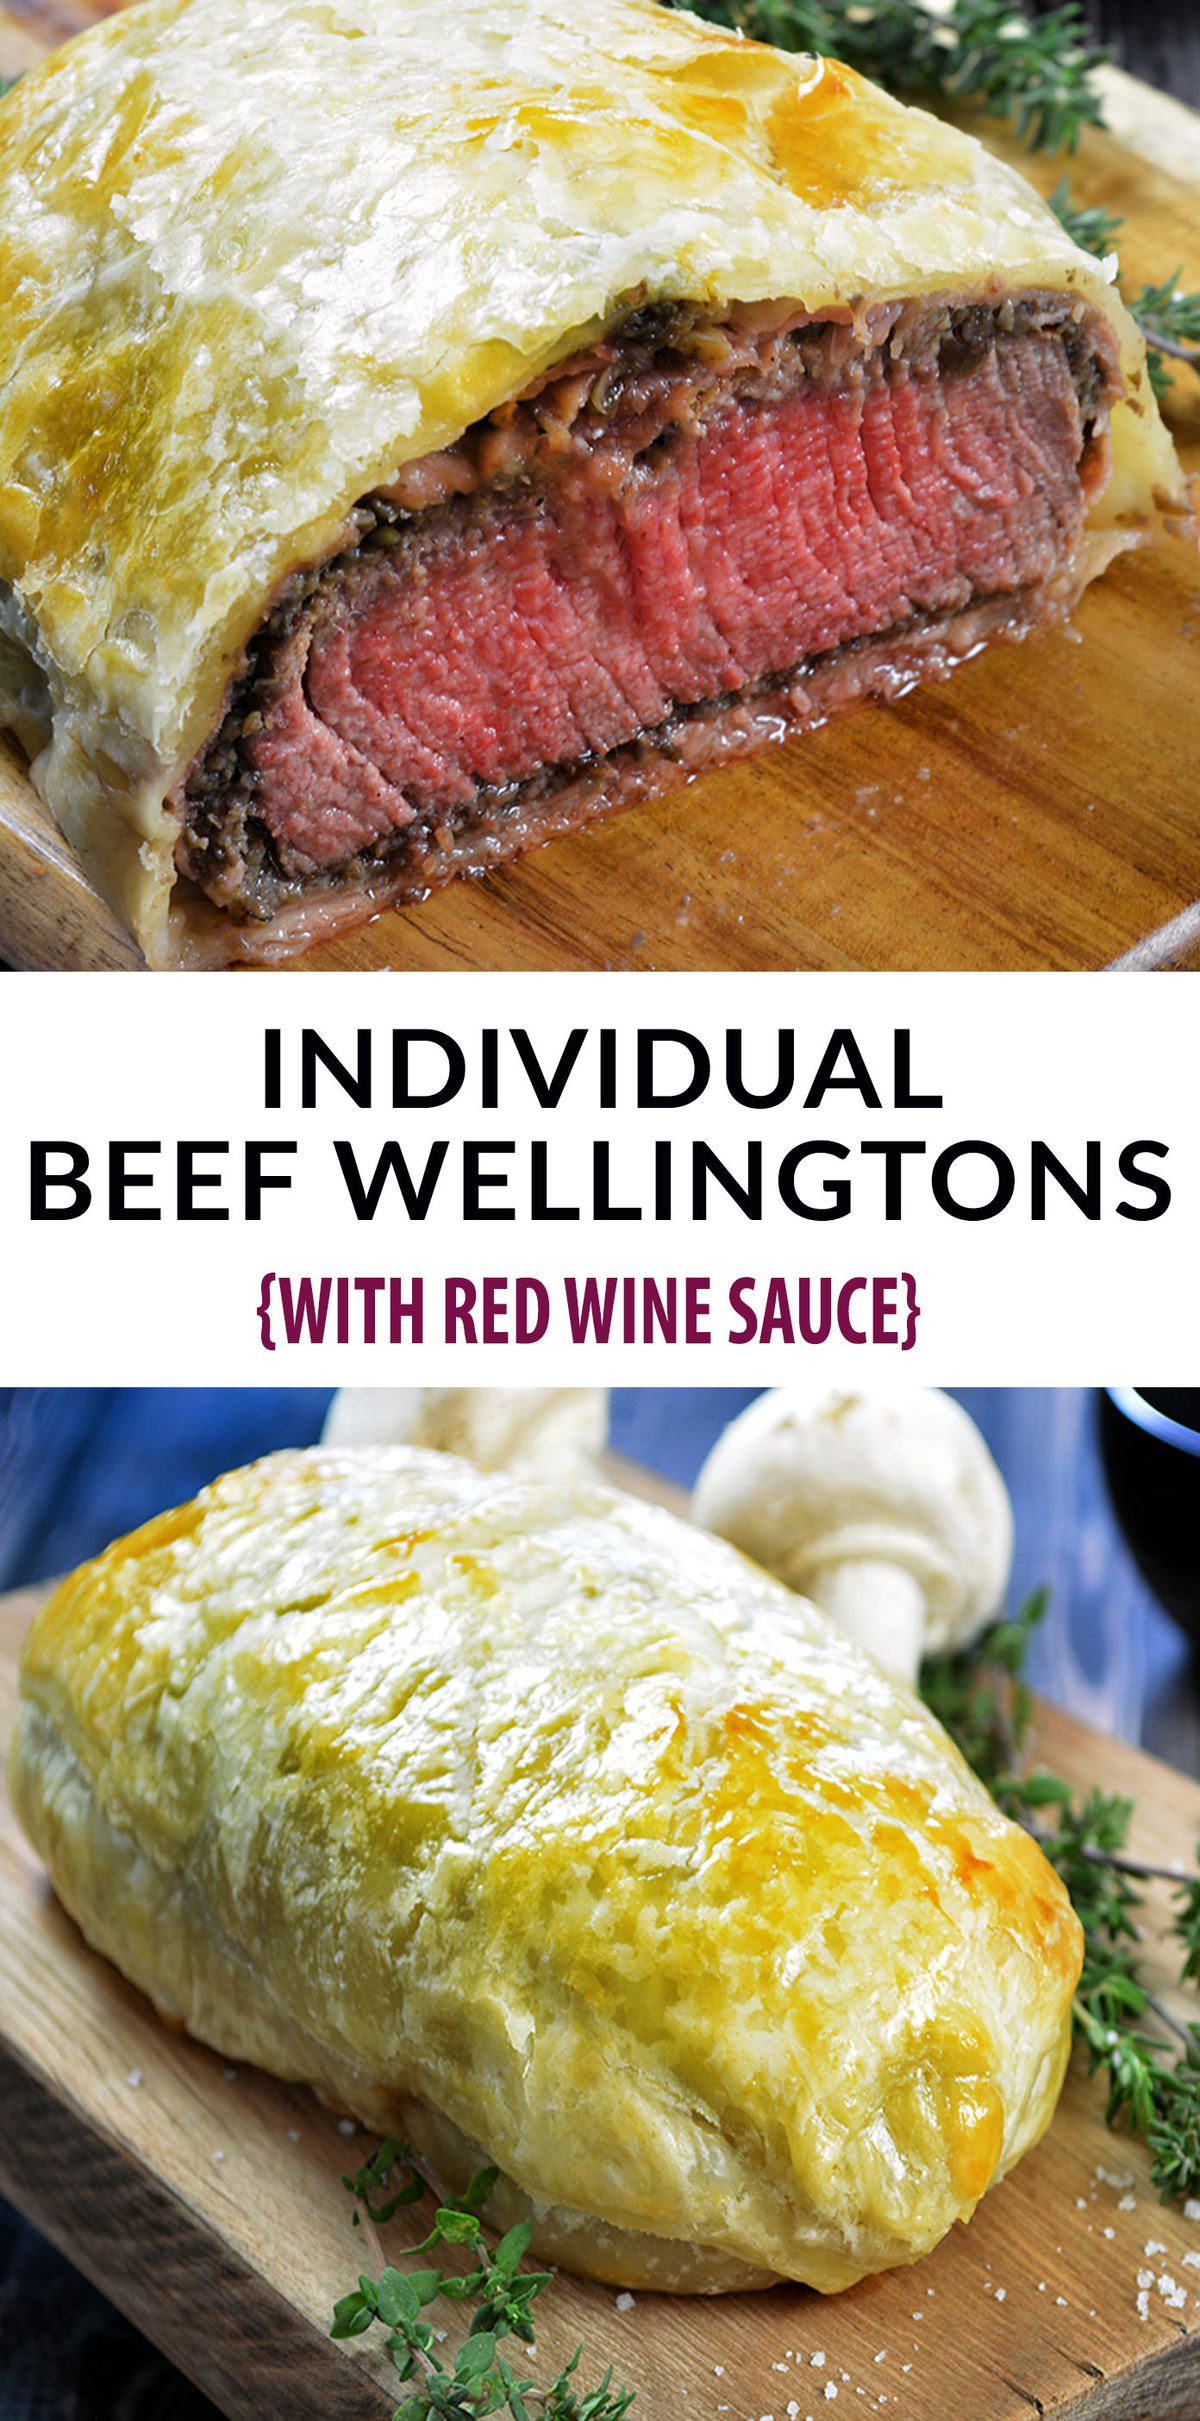 Beef Wellington Recipe - just like Gordon Ramsey's Beef Wellington. Decadent and tender filet mignon, topped with a rich mushroom duxelles, delicate prosciutto and wrapped in a golden, buttery puff pastry. Individual Beef Wellington is the perfect Valentine's Day meal.#valentinesdayfood #valentinesdayideas #valentinesdaydinner #filetmignon #beefrecipes #beeftenderloinrecipes #puffpastryrecipes #dinnerrecipes #redwinerecipes #beefwellington #beefwellingtonrecipe #beefwellingtongordeonramsey #beefwellingtoneasy #beefwellingtonsauce